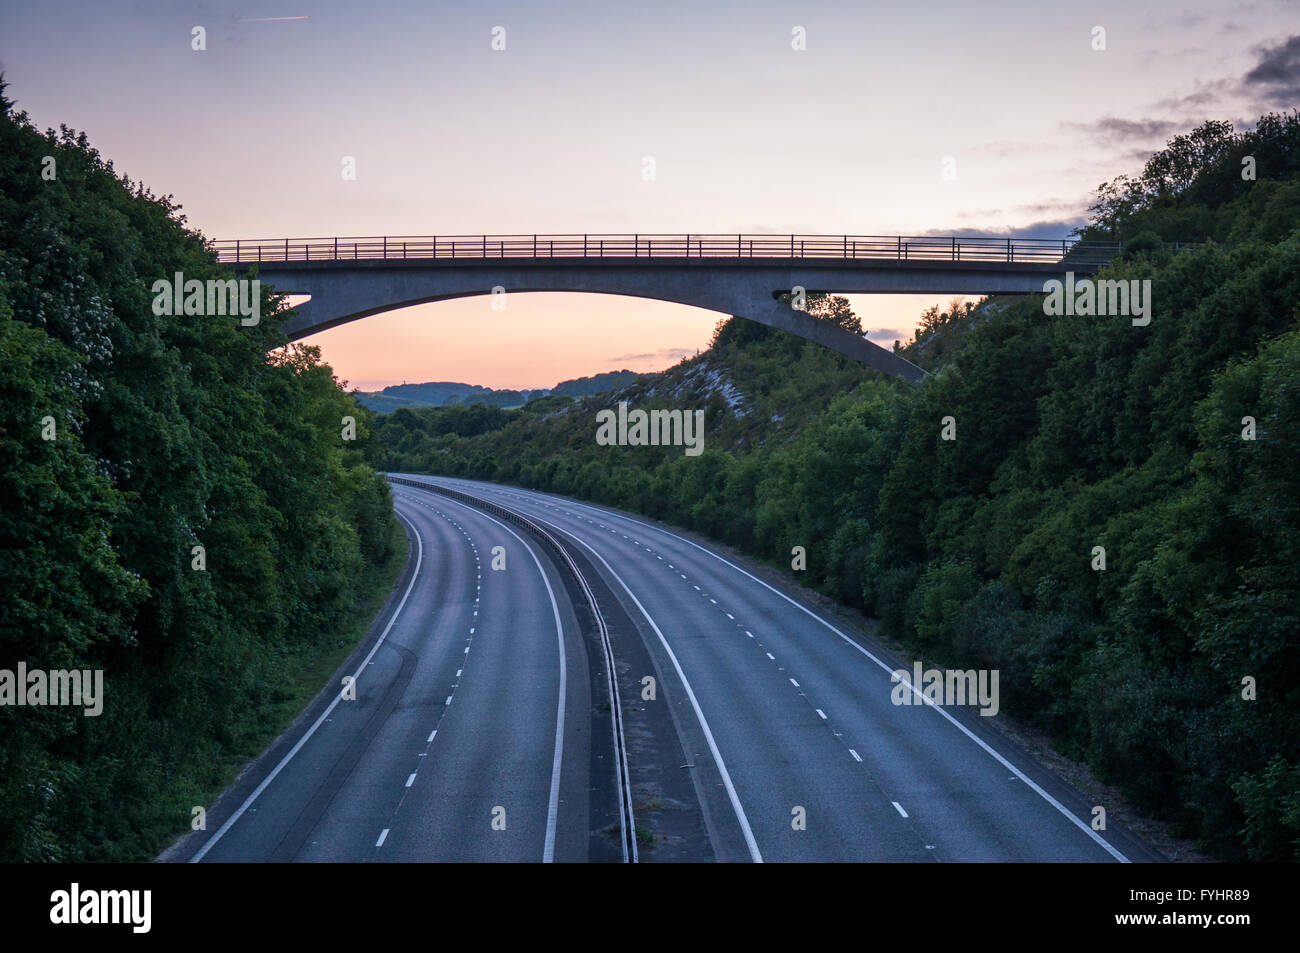 The A27 dual carriageway trunk road empty of traffic at Lewes in Sussex. - Stock Image